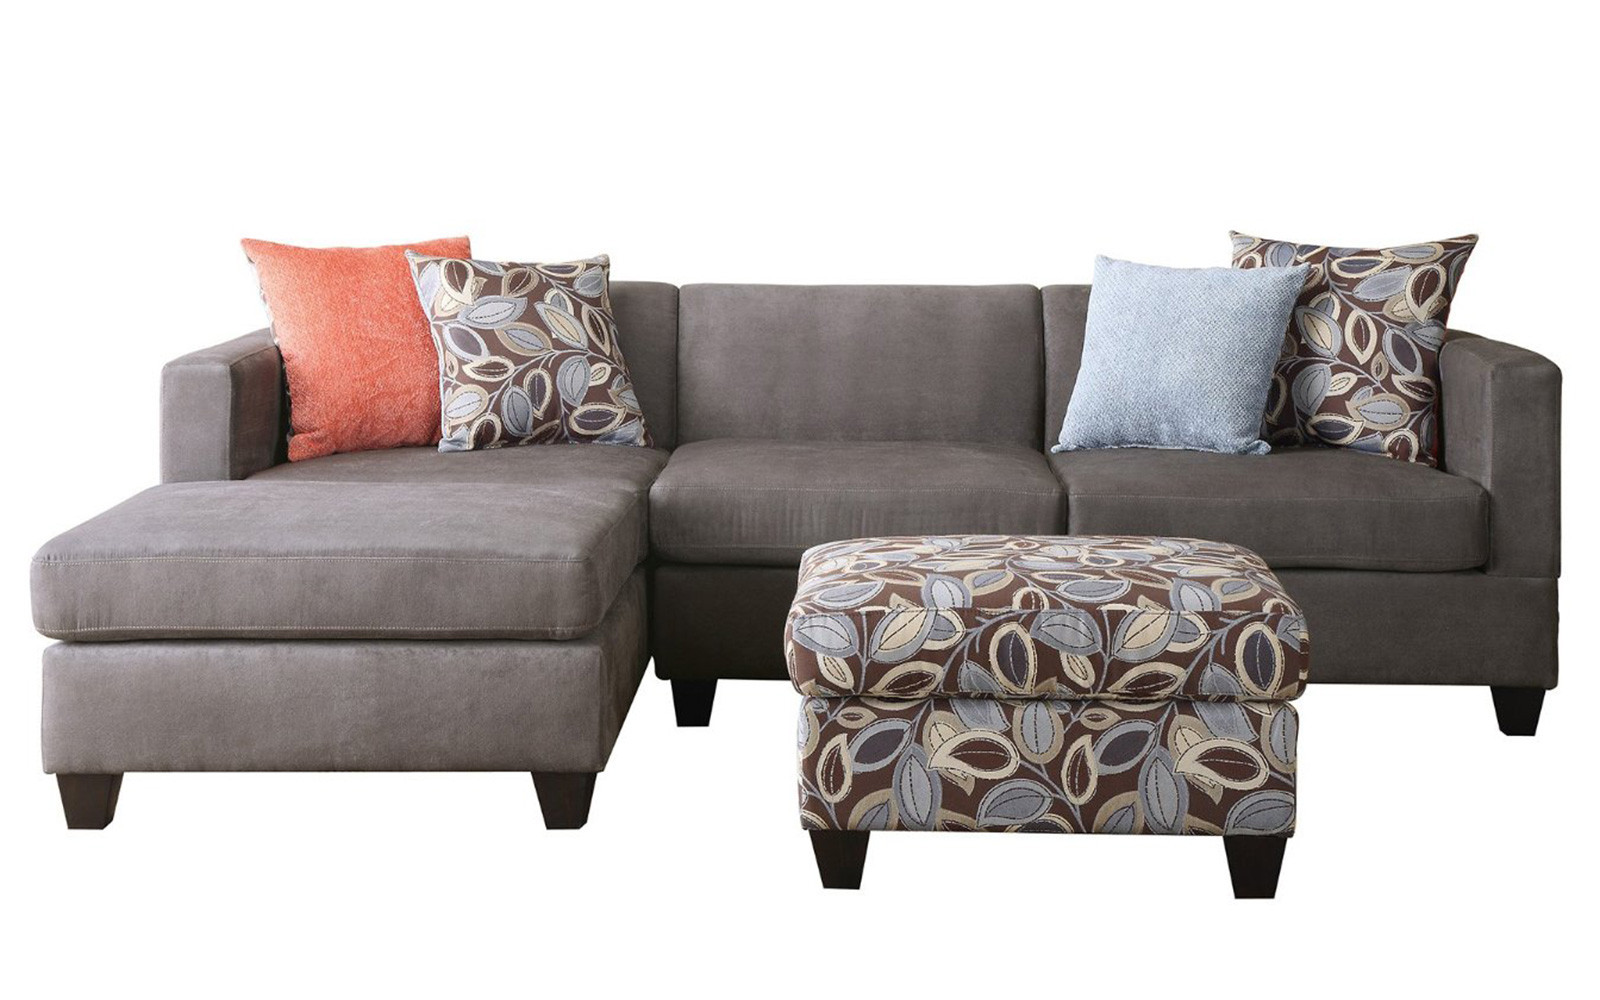 3 Piece Small Space Reversible Grey Microfiber Sectional Sofa With Floral  Print Ottoman   Walmart.com